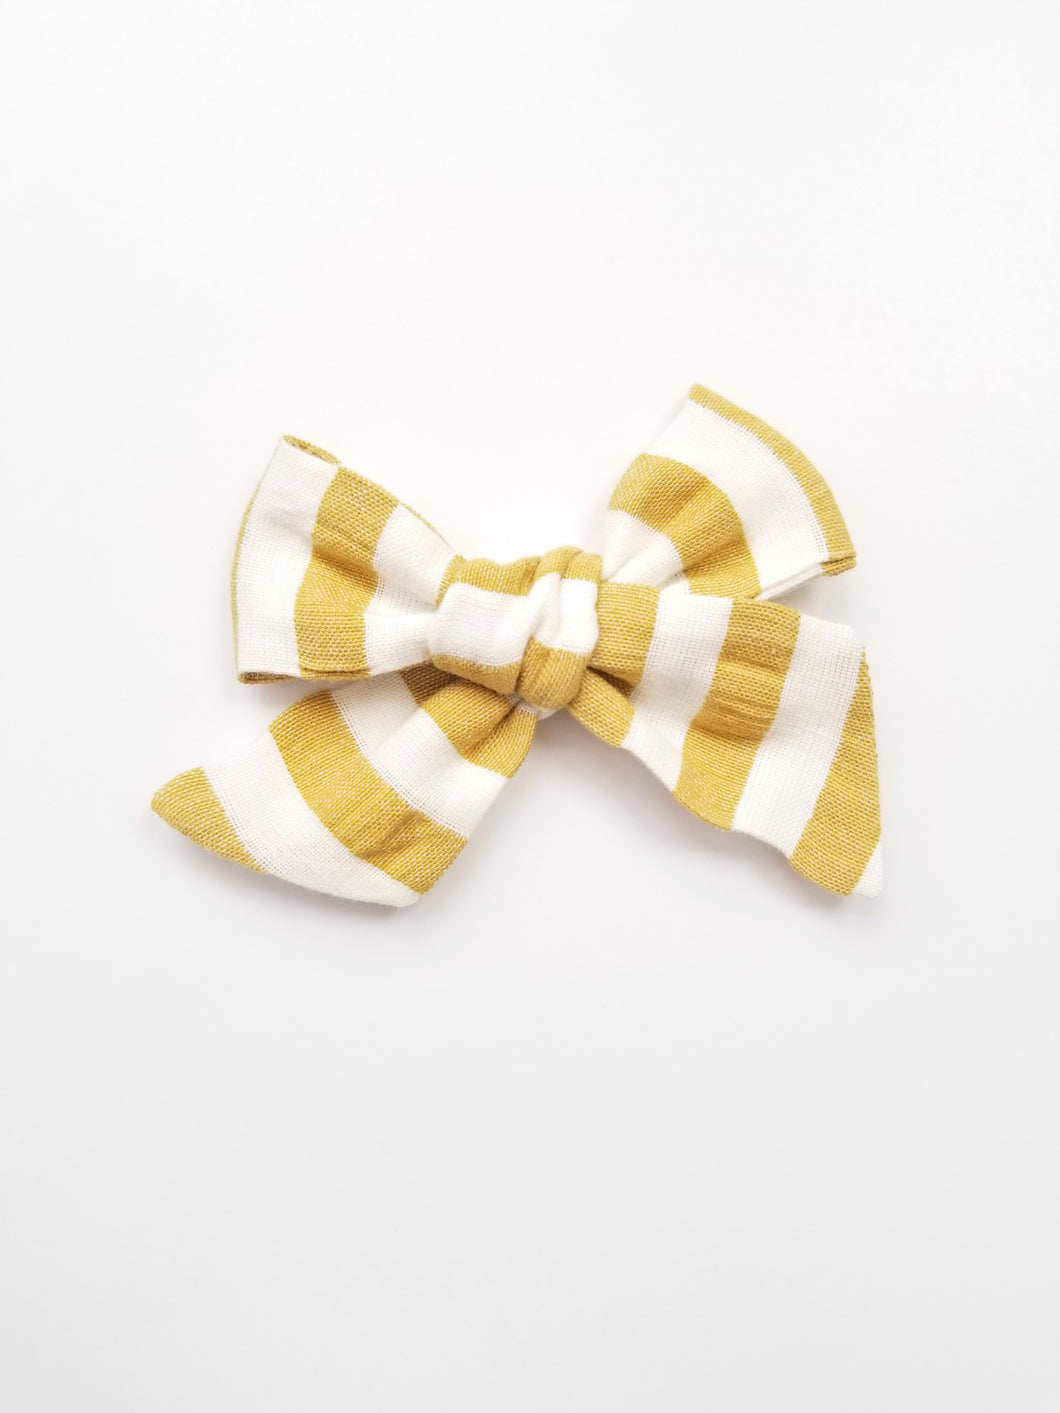 Claire Knotted Hair Bow Striped Mustard - Adassa Rose